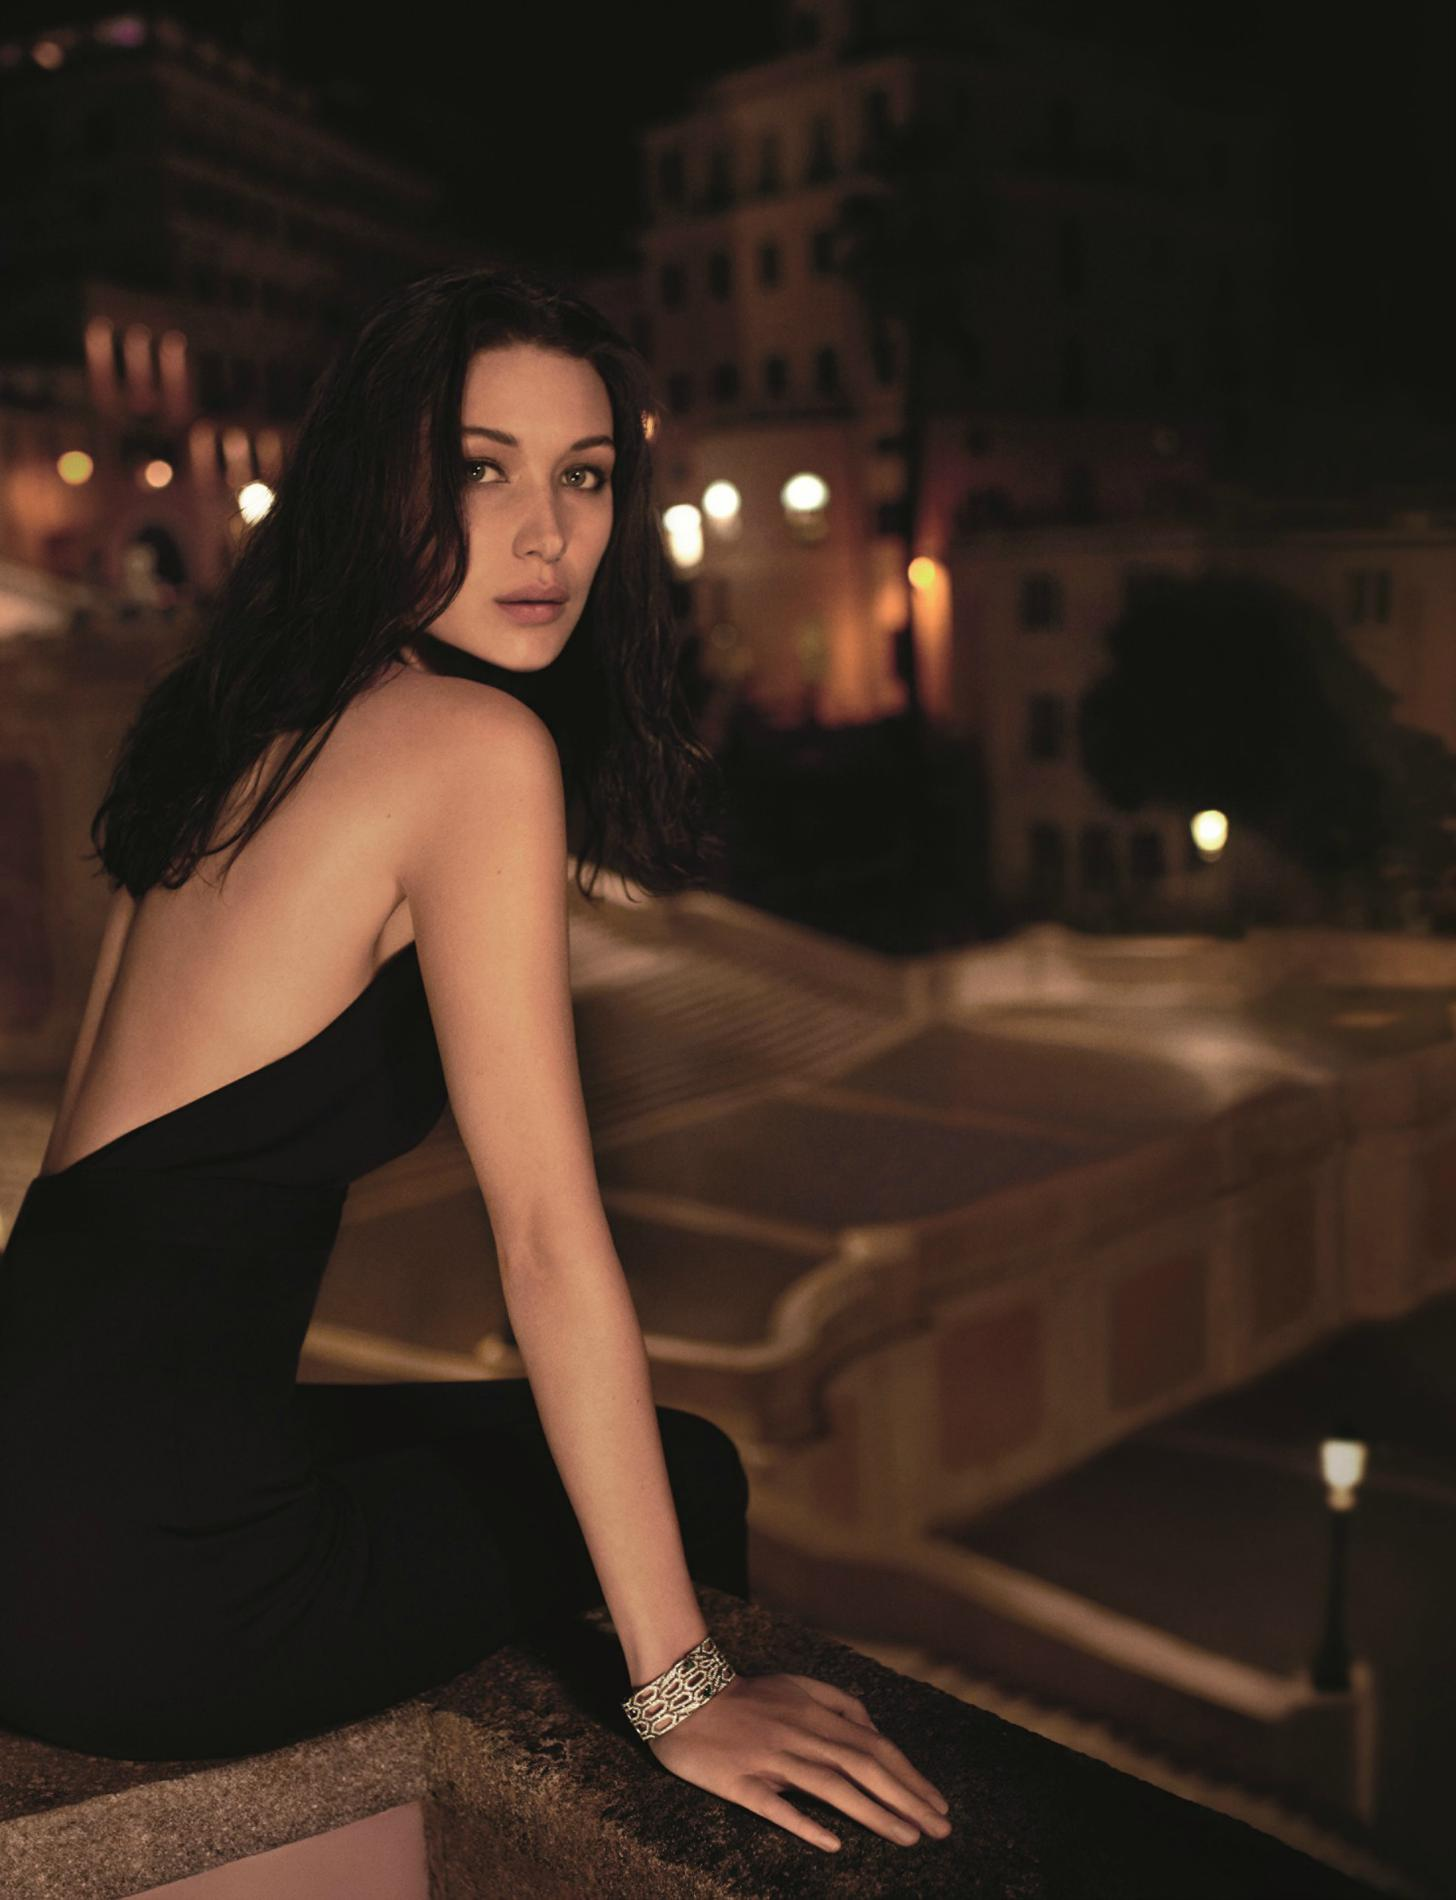 Meet The new Luxury Perfume Bvlgari Goldea Roman Night Bella Hadid bvlgari goldea roman night Meet The new Luxury Perfume: Bvlgari Goldea Roman Night Meet The new Luxury Perfume Bvlgari Goldea Roman Night Bella Hadid